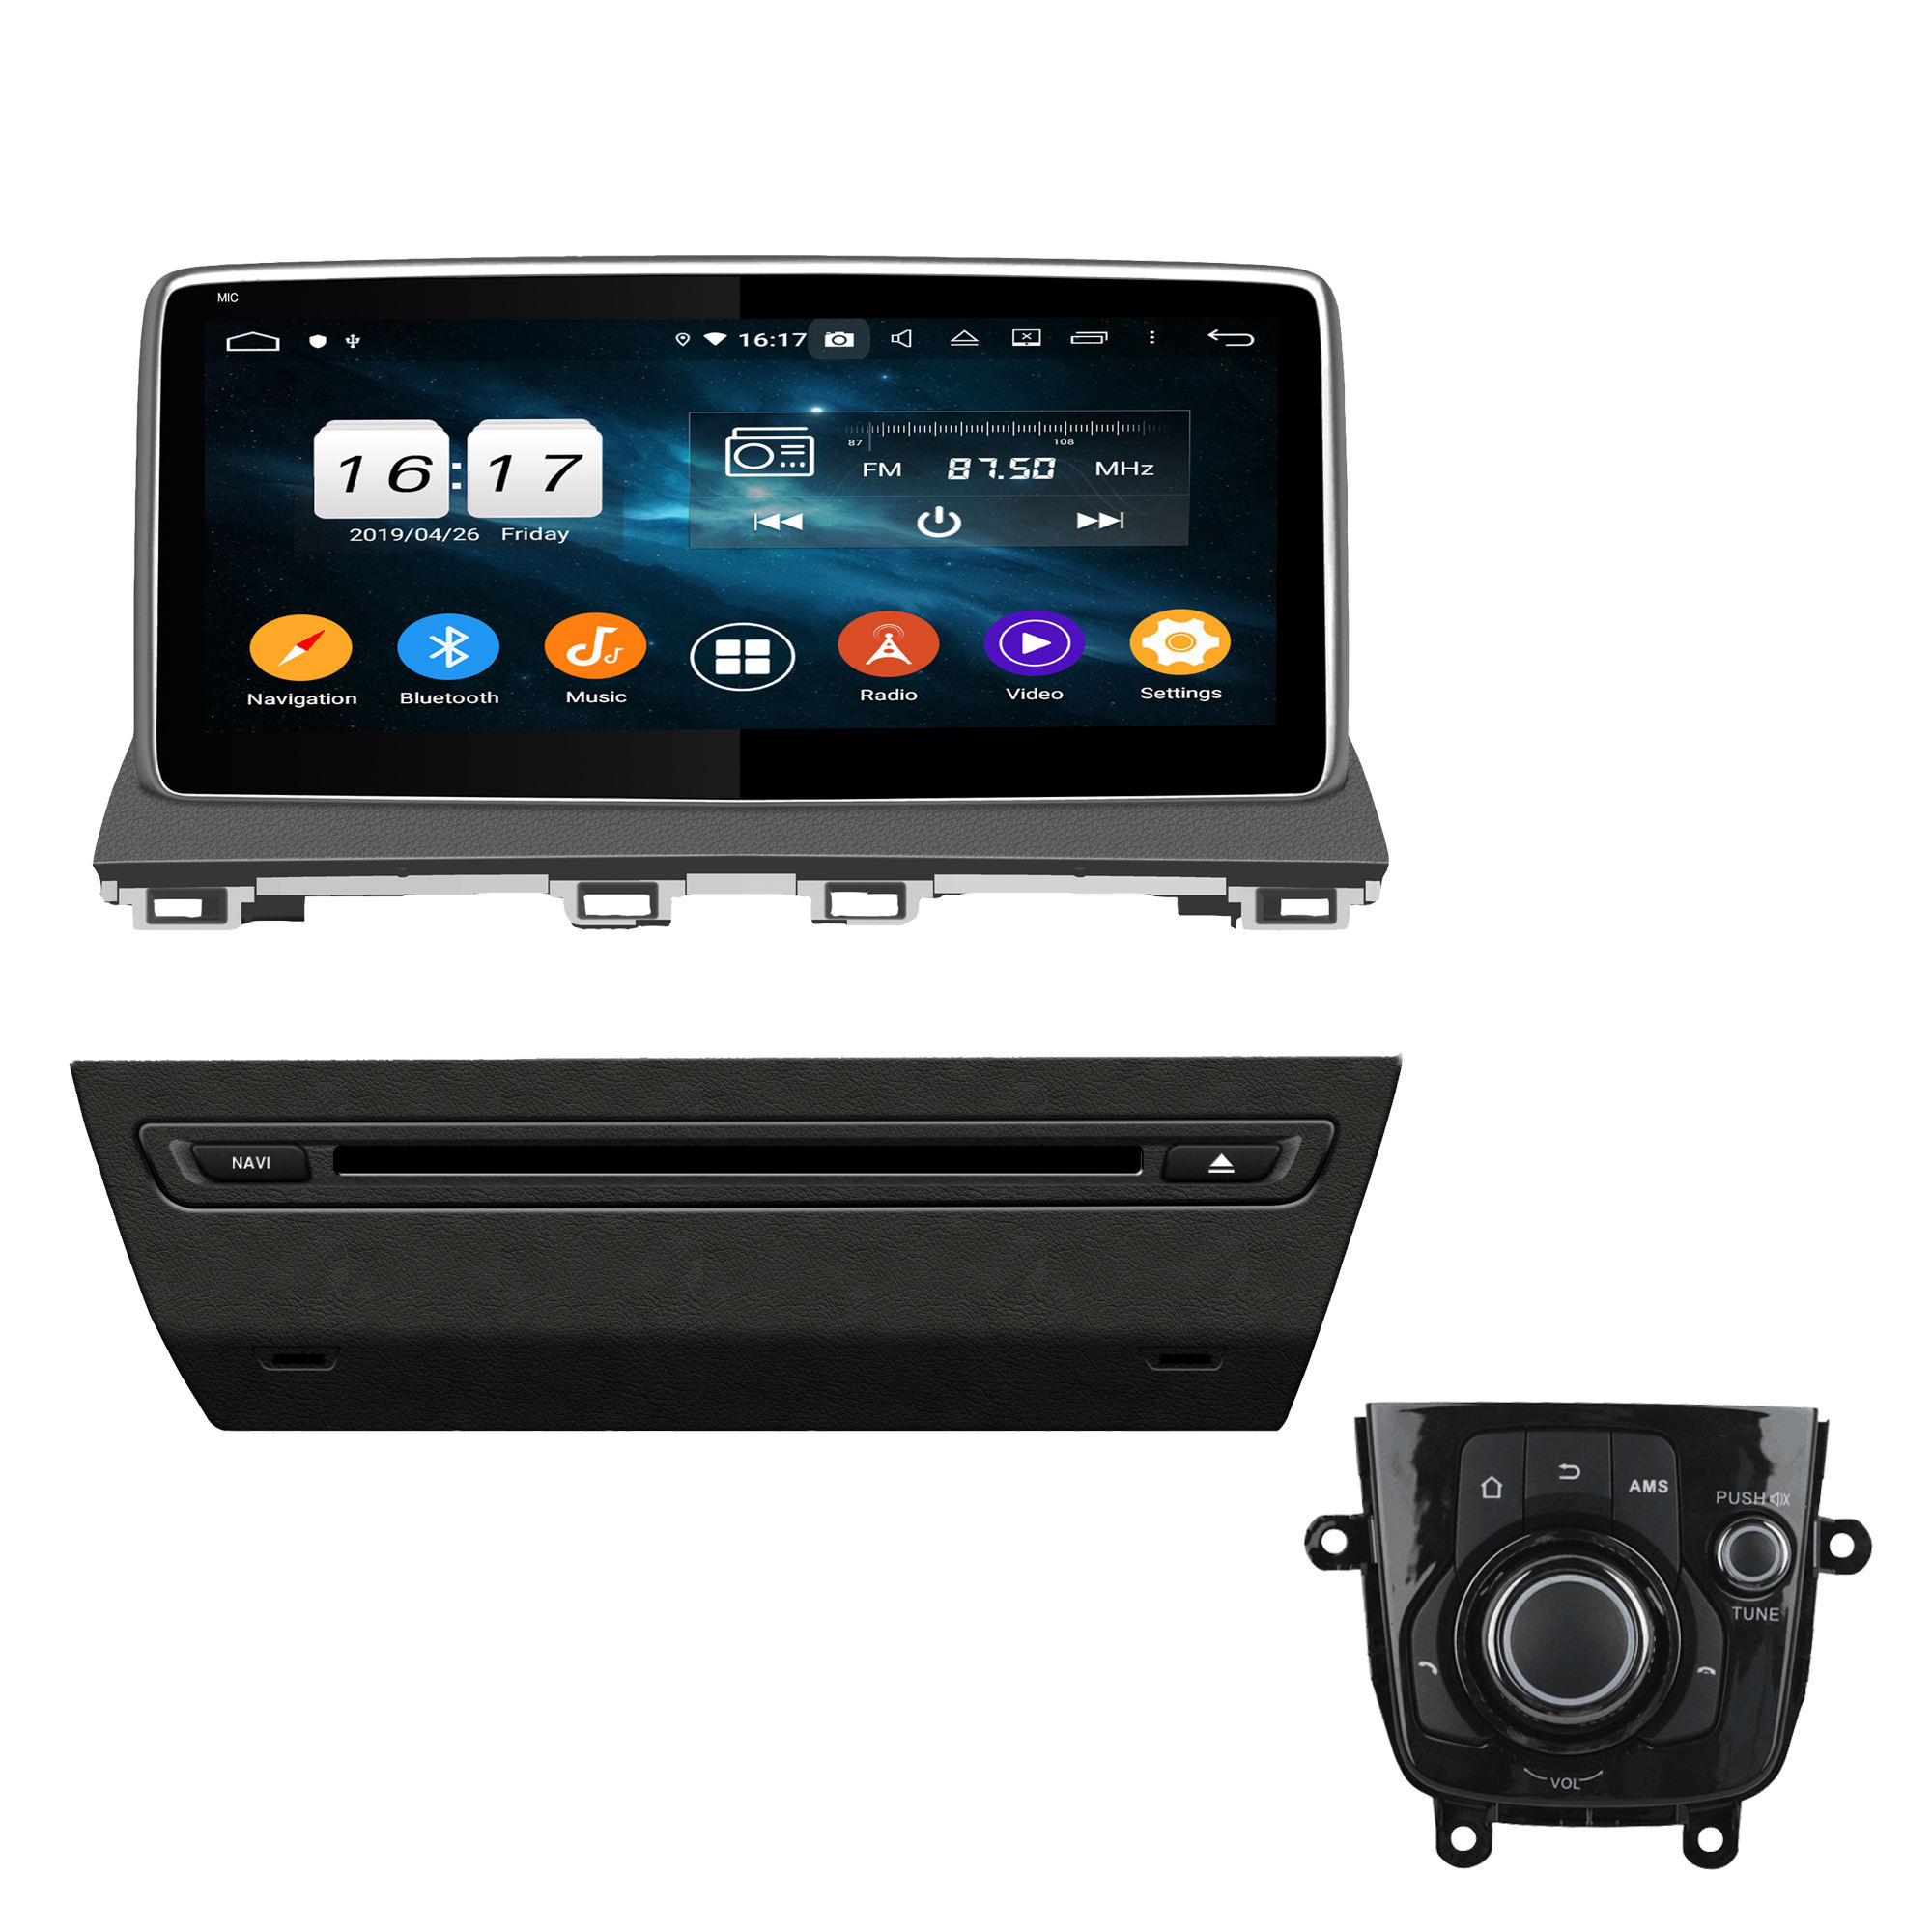 KD-1118 Android 10.0 Hot-Selling PX5 10.1 inch Car Radio Gps Navigation Stereo For Mazda 3 Axela 2014-2016